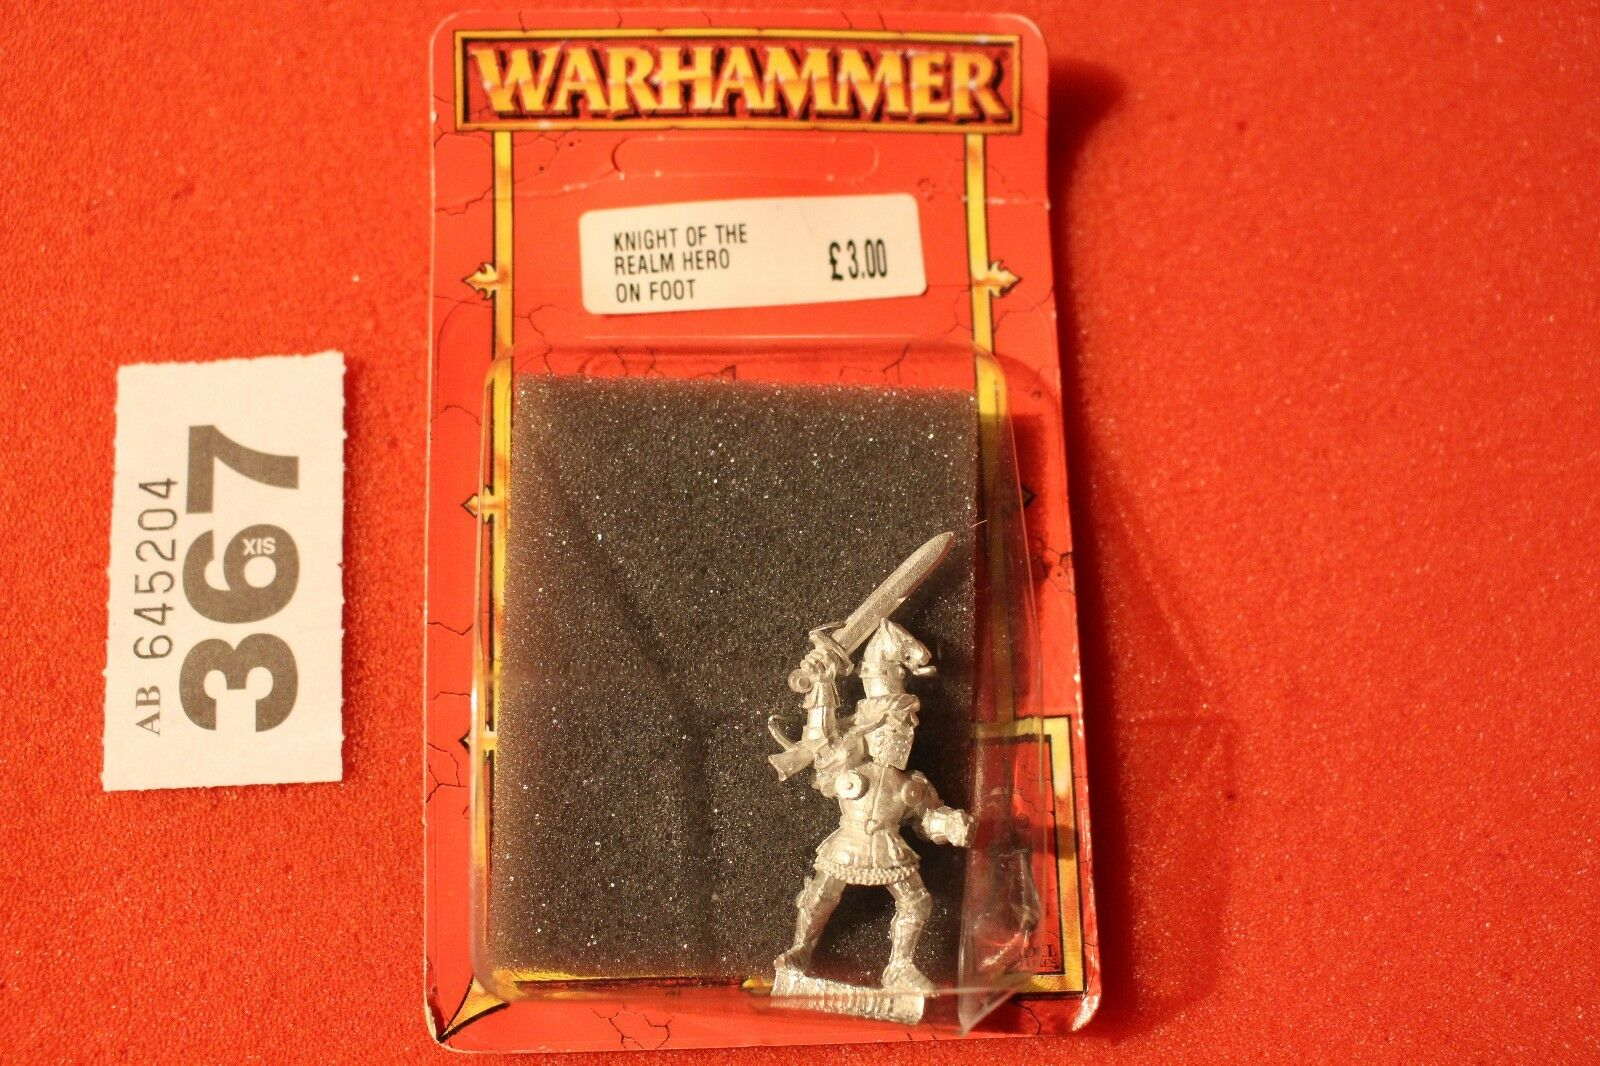 Warhammer Bretonnian Knight of the Realm Hero Foot Metal Citadel Games Workshop